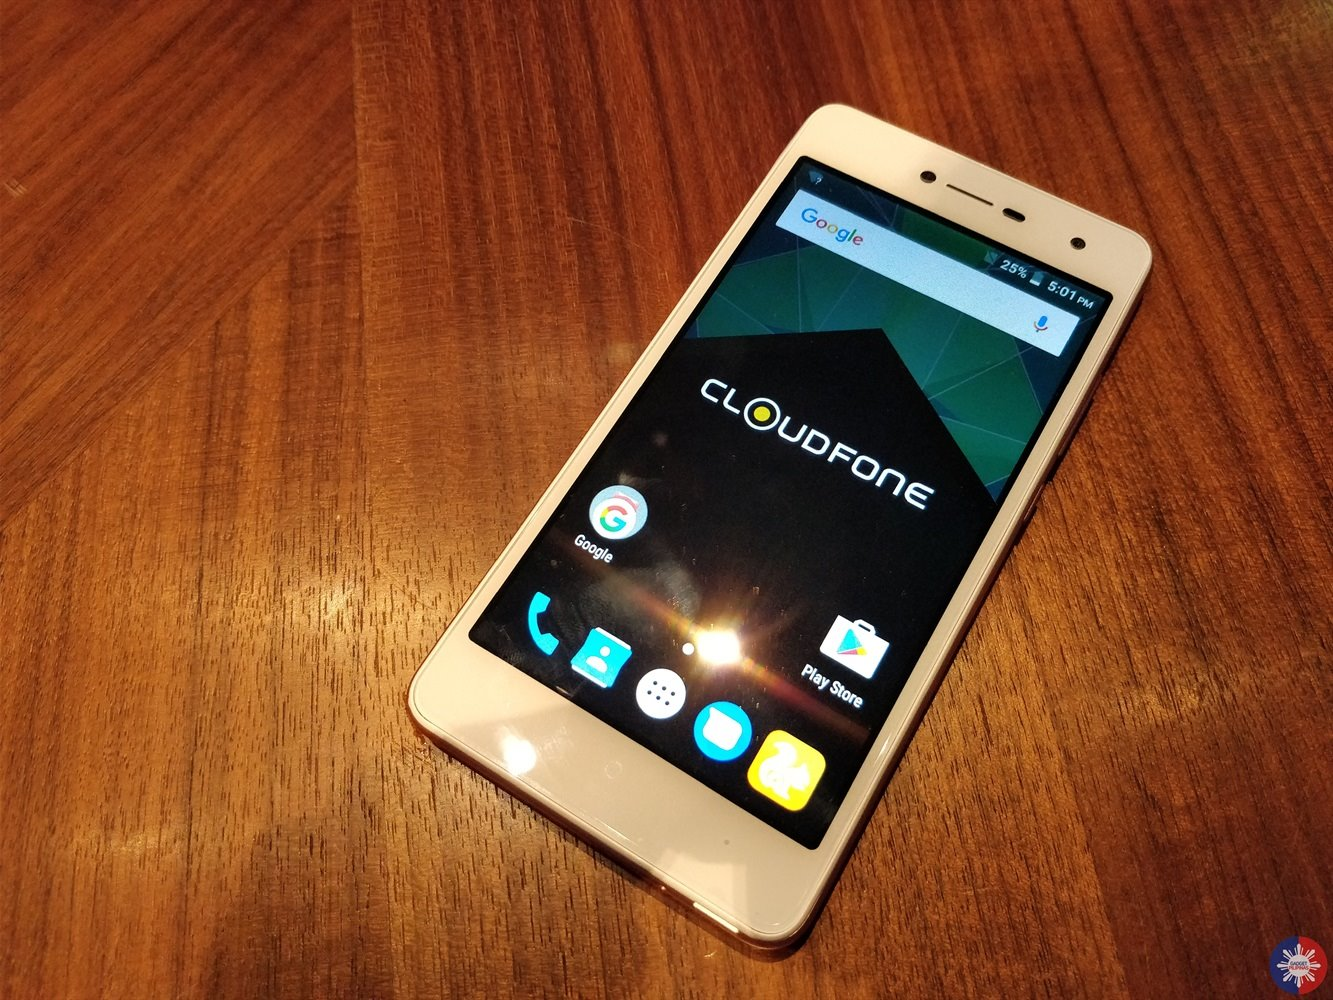 thrillboost2 11 - Cloudfone Launches Thrill Boost 2: Quad-Core CPU and Android Nougat For Only PhP2,699